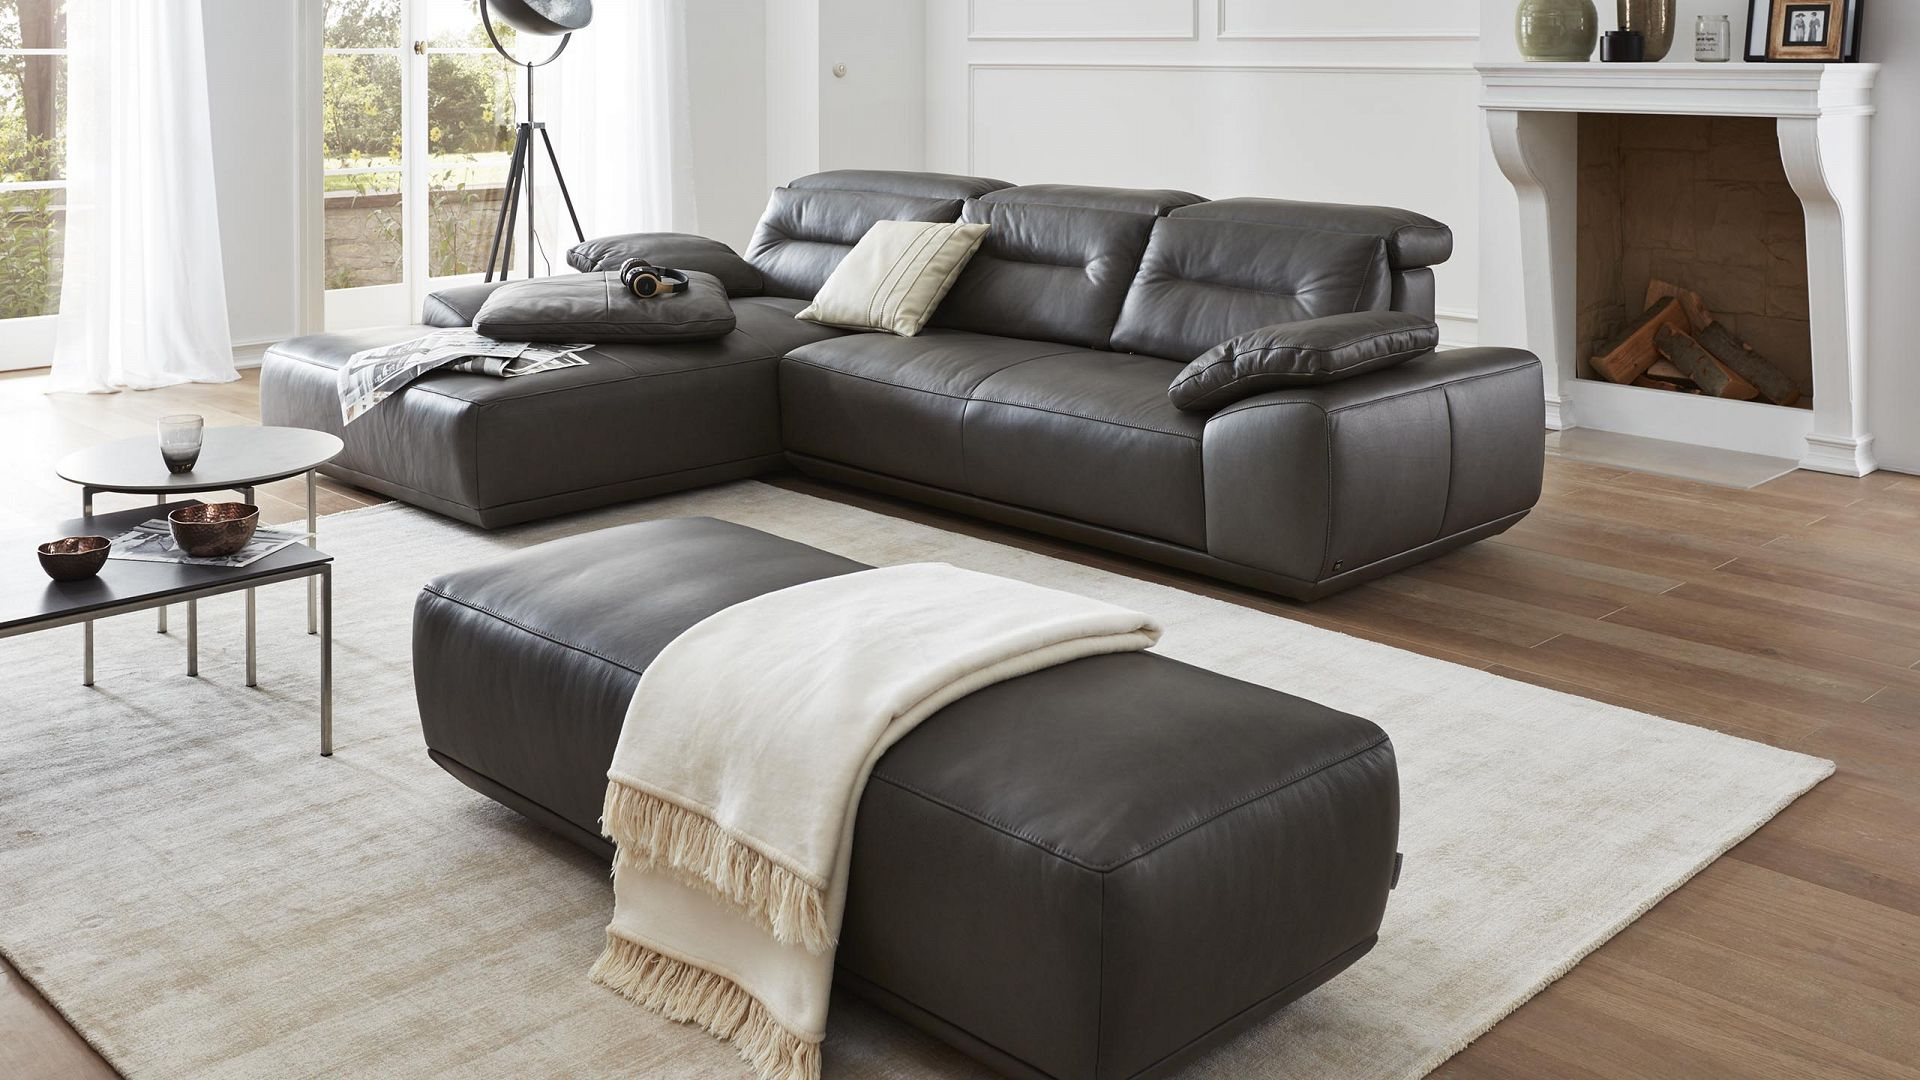 Interliving Sofa Serie 4000 Image